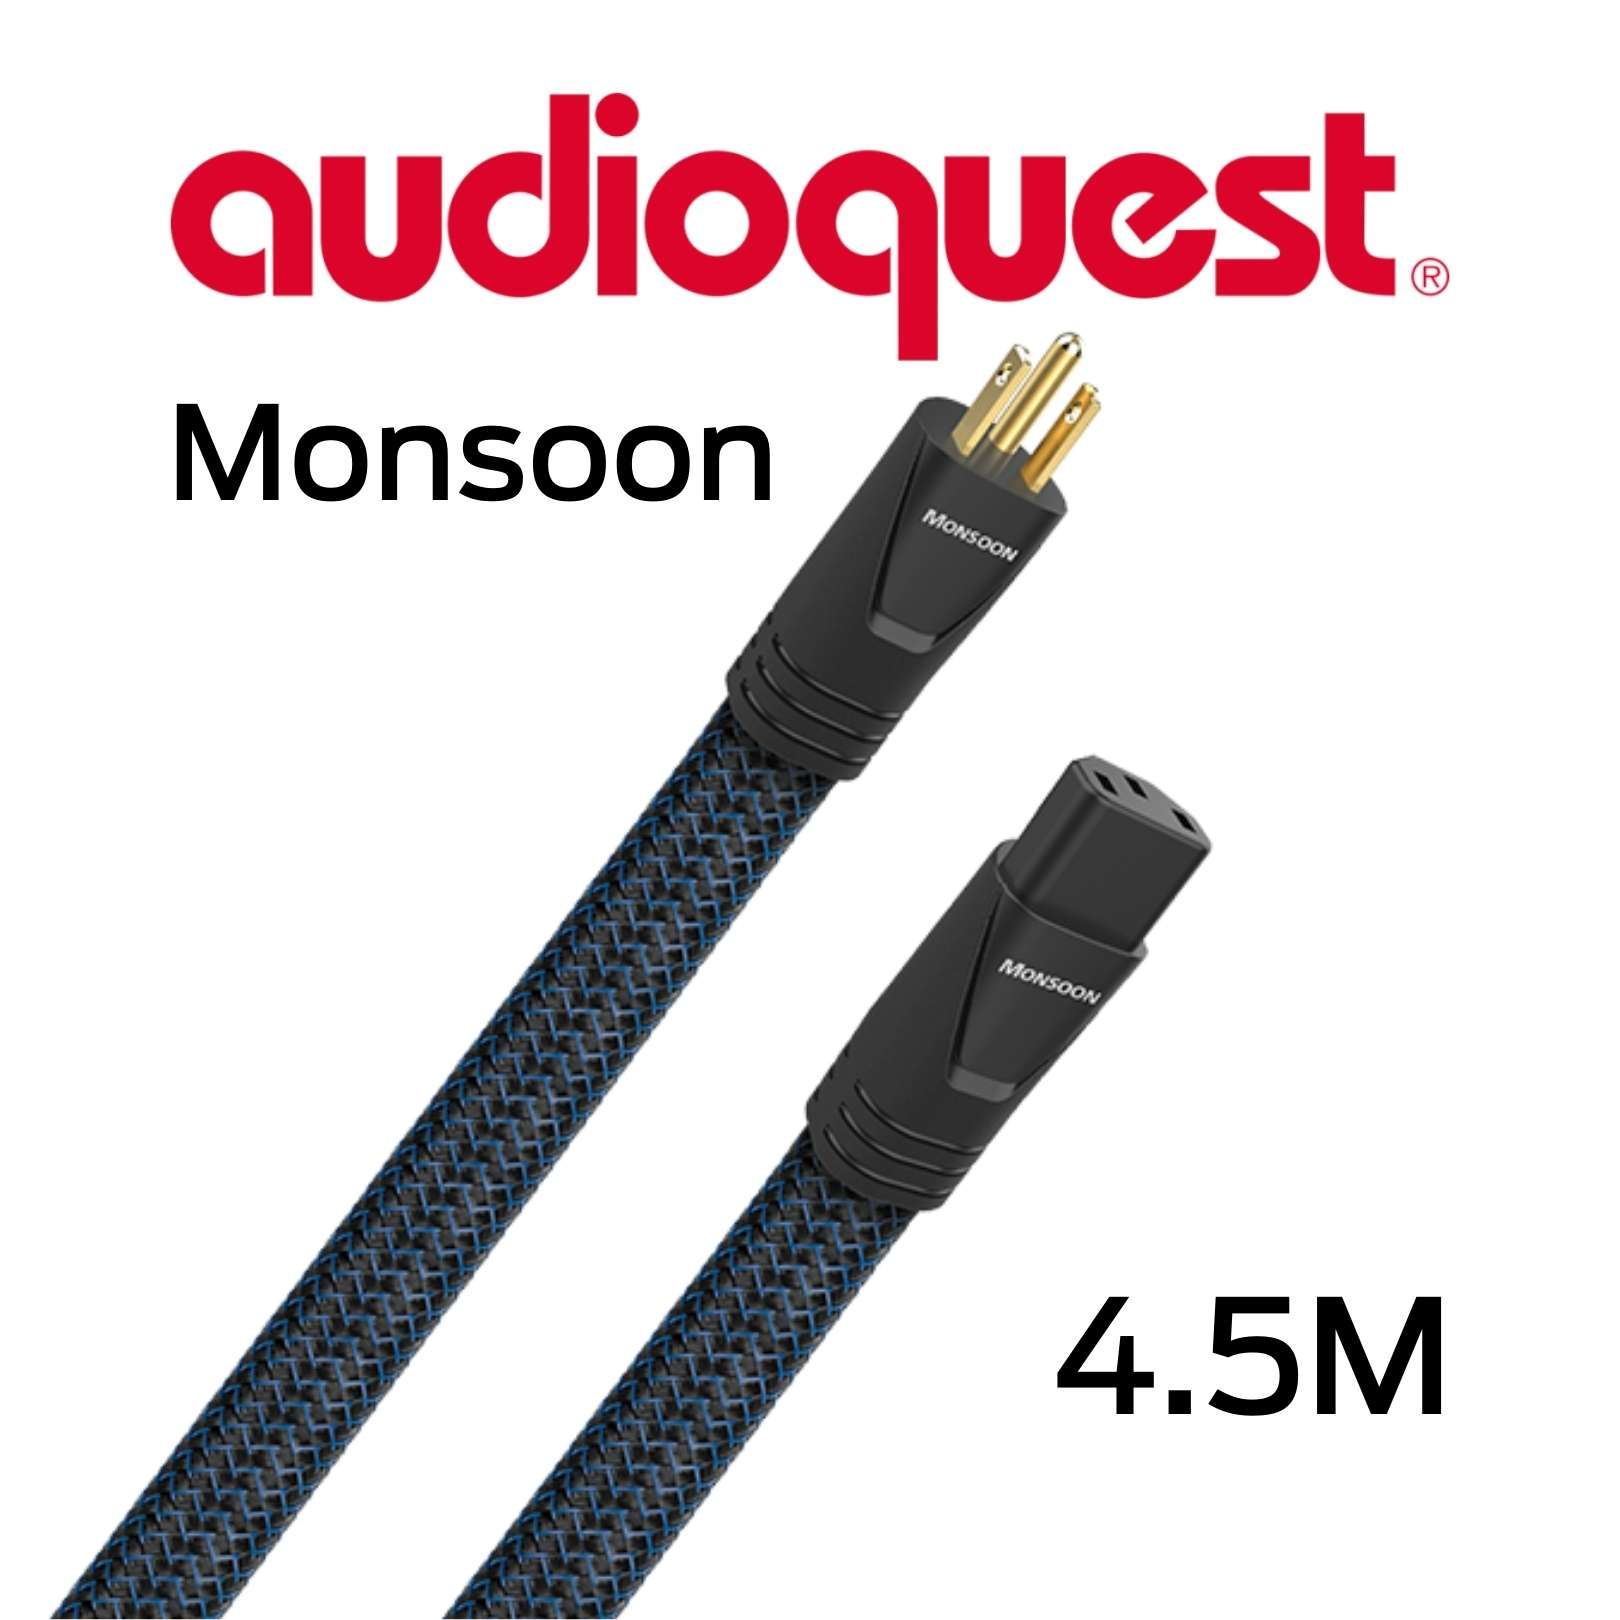 AudioQuest - Câble d'alimentation tripolaire 4.5M Calibre 12AWG 20 Amp@60HZ Monsoon450